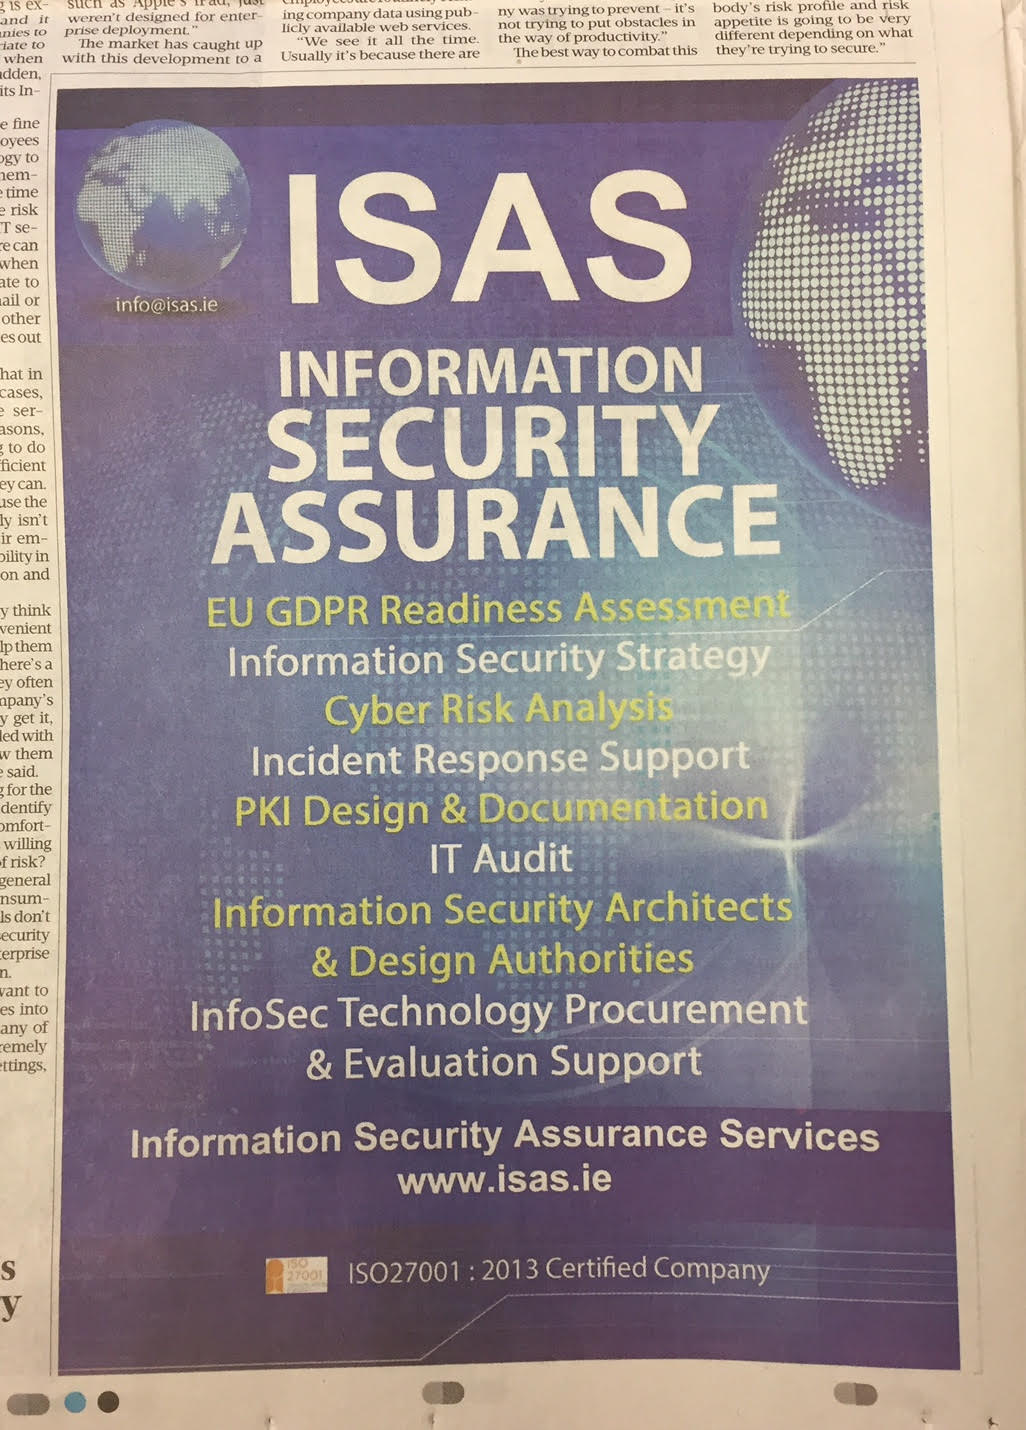 ISAS – Information Security Assurance